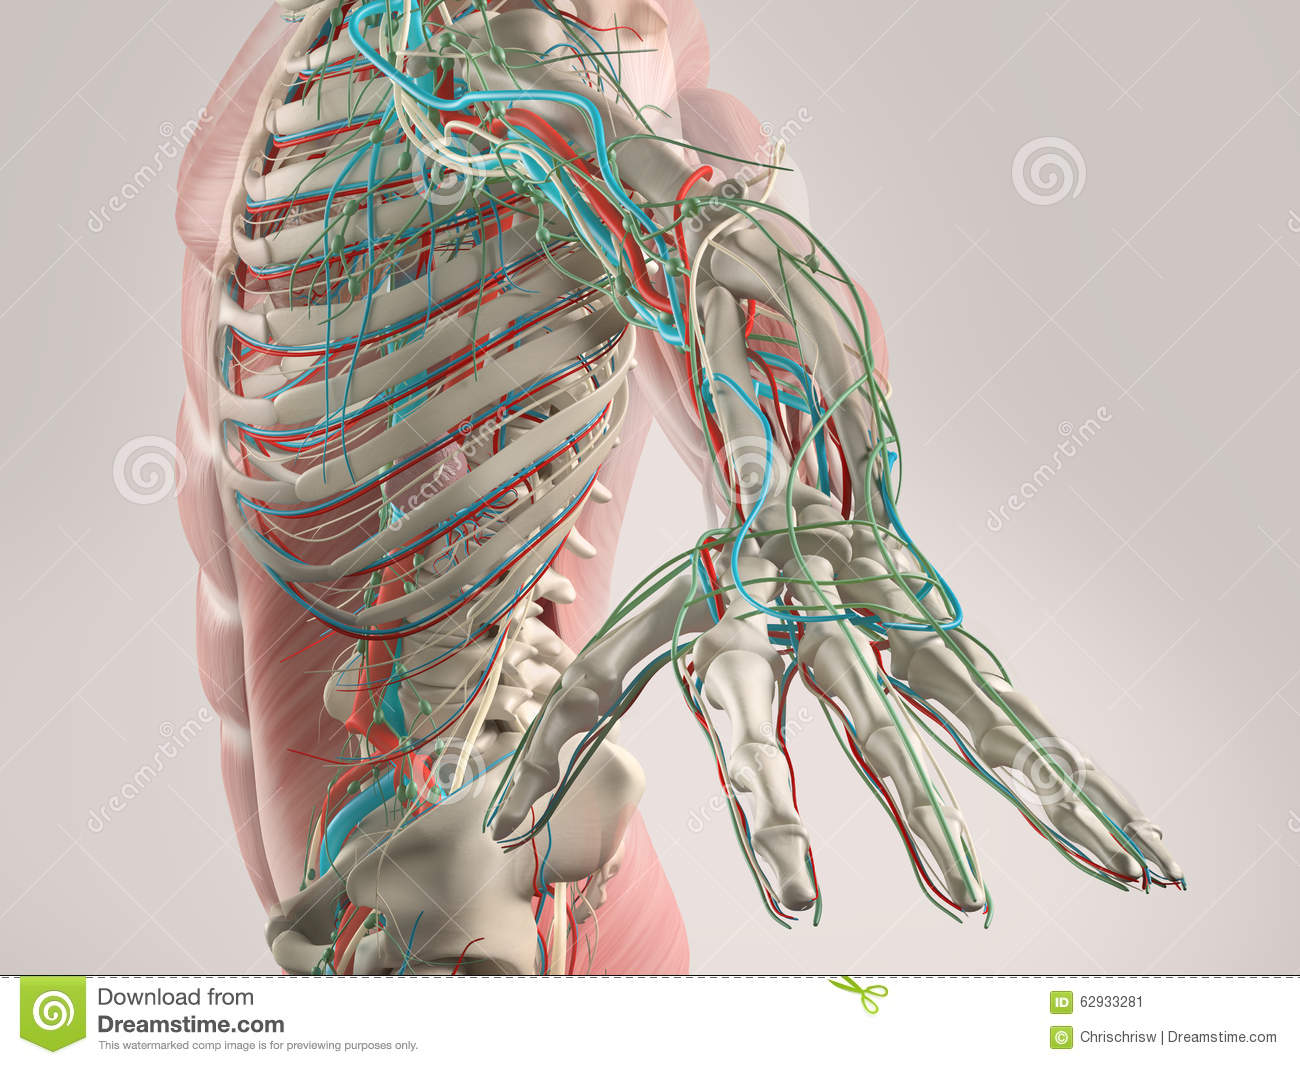 Human Anatomy View Of Torso And Arm. Stock Image - Image of torso ...